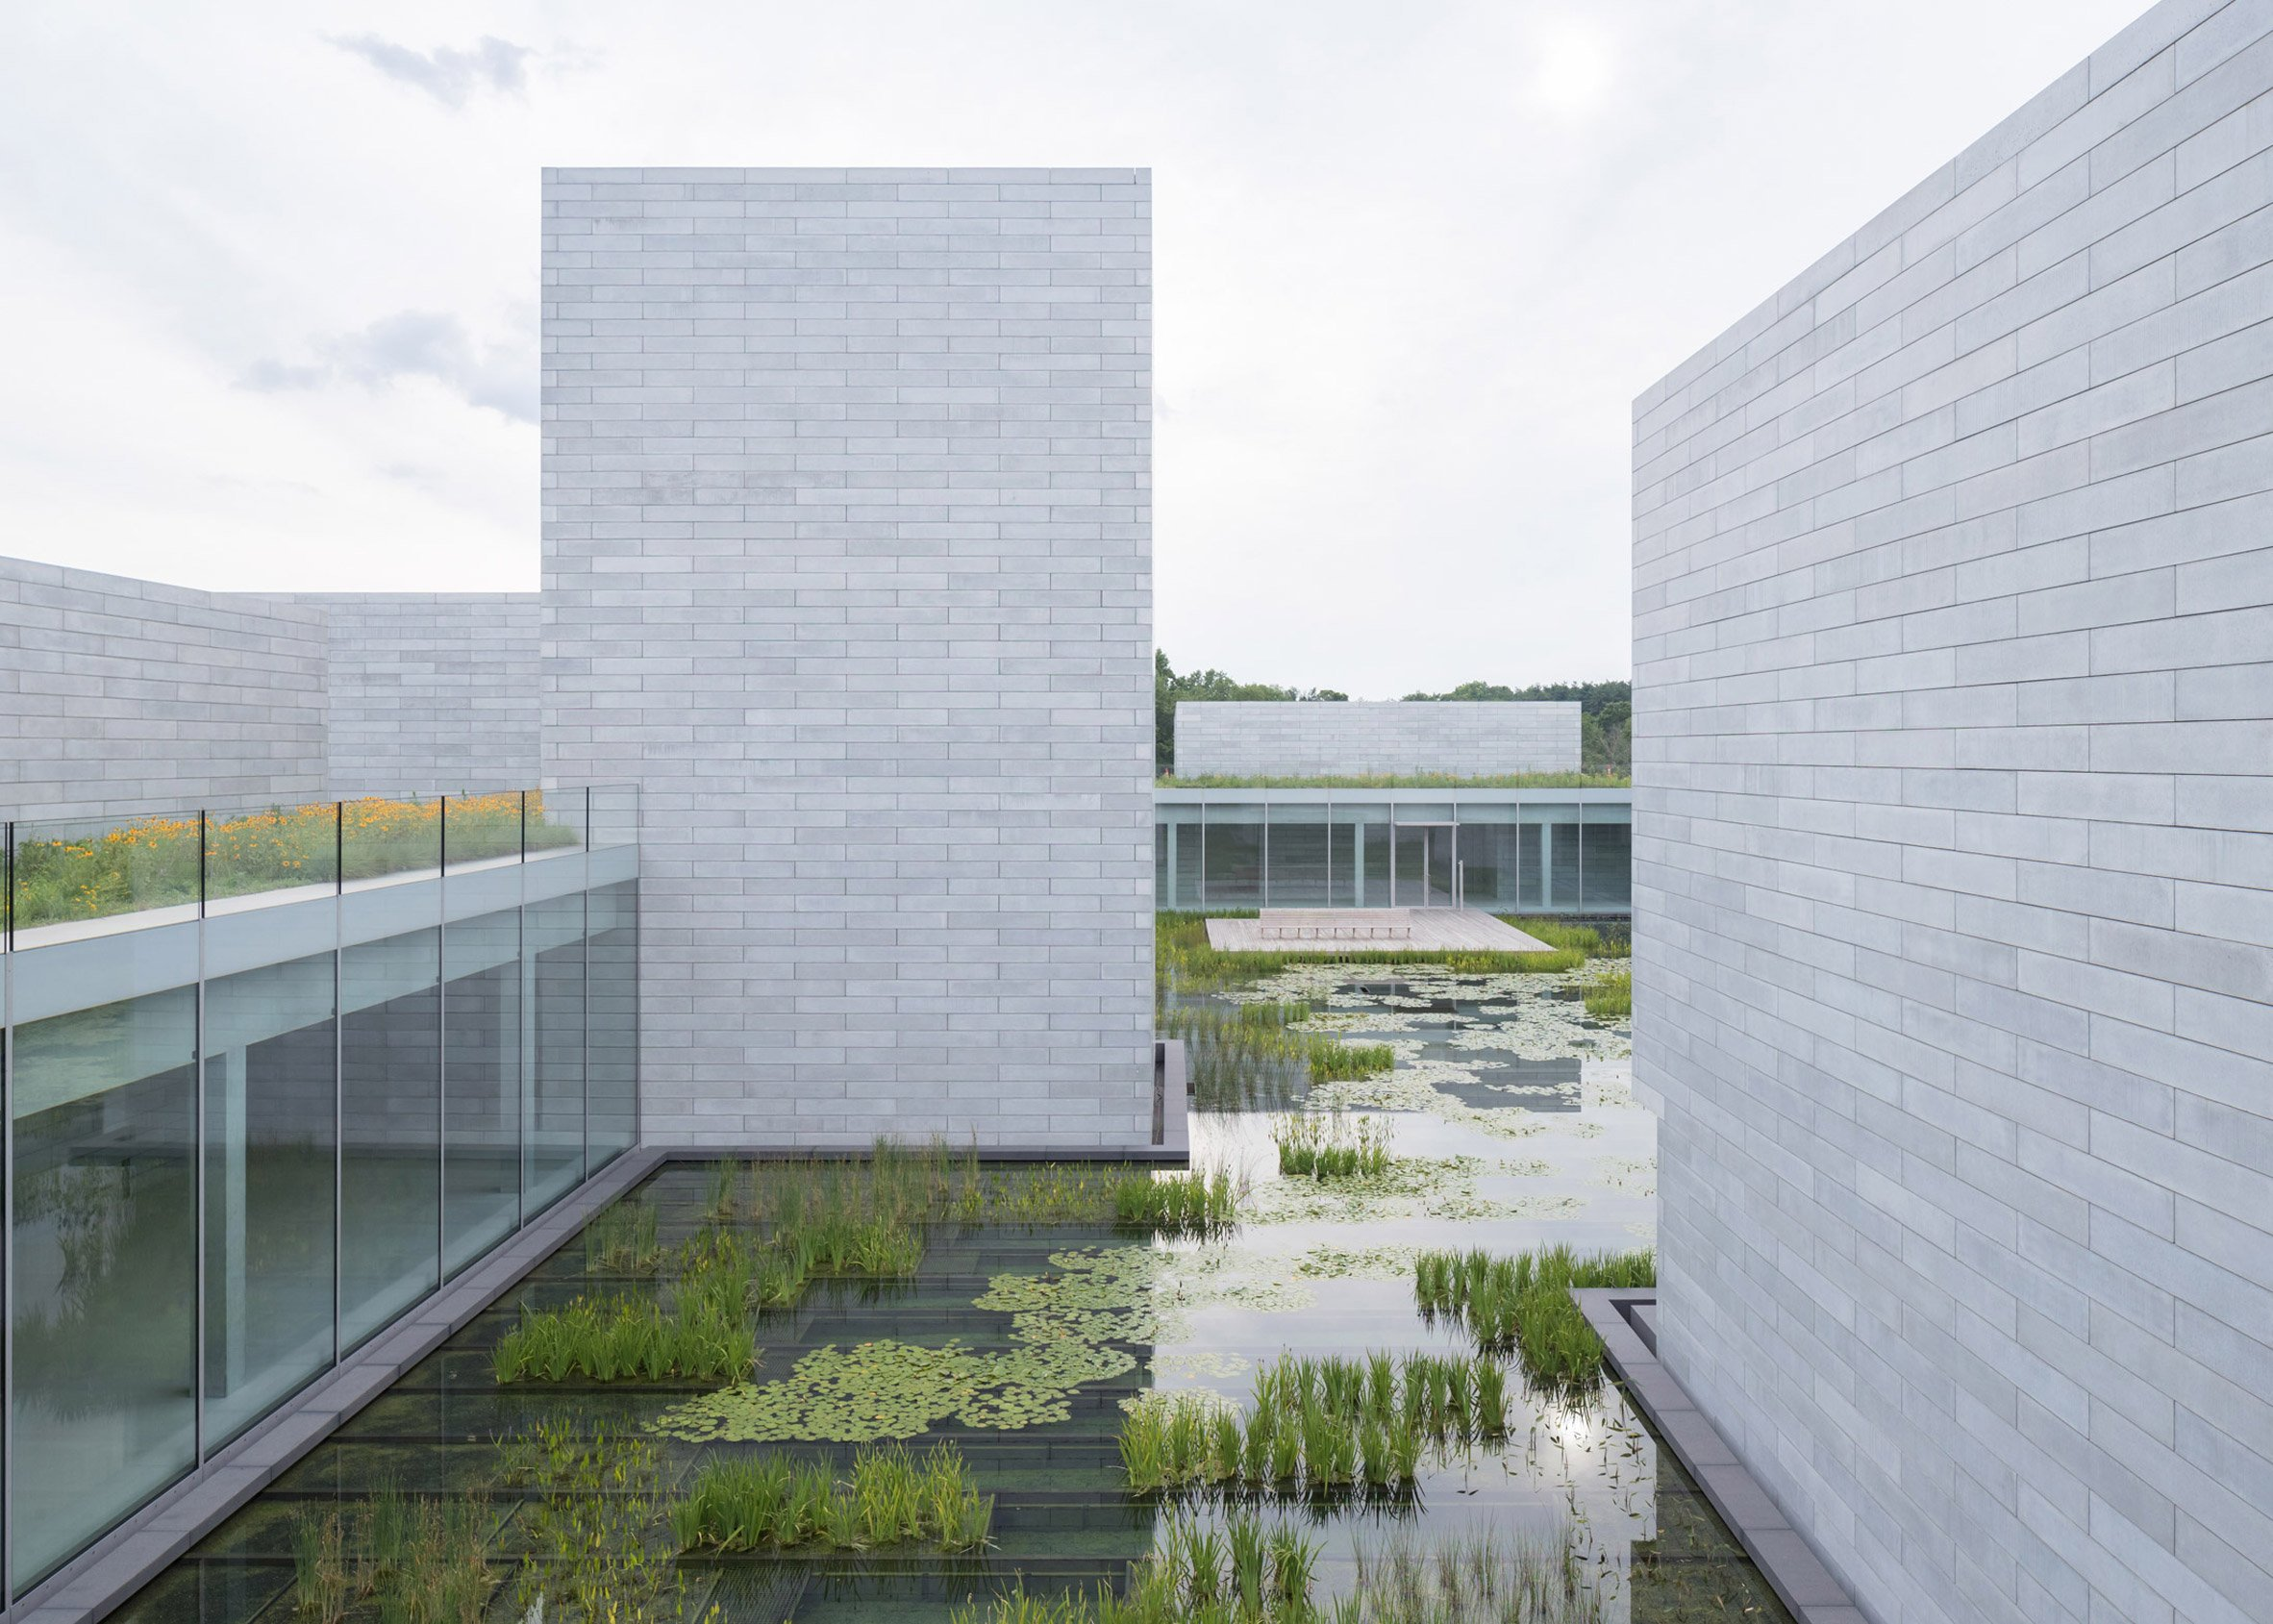 Glenstone Museum by Thomas Phifer, Dezeen's top museums and galleries